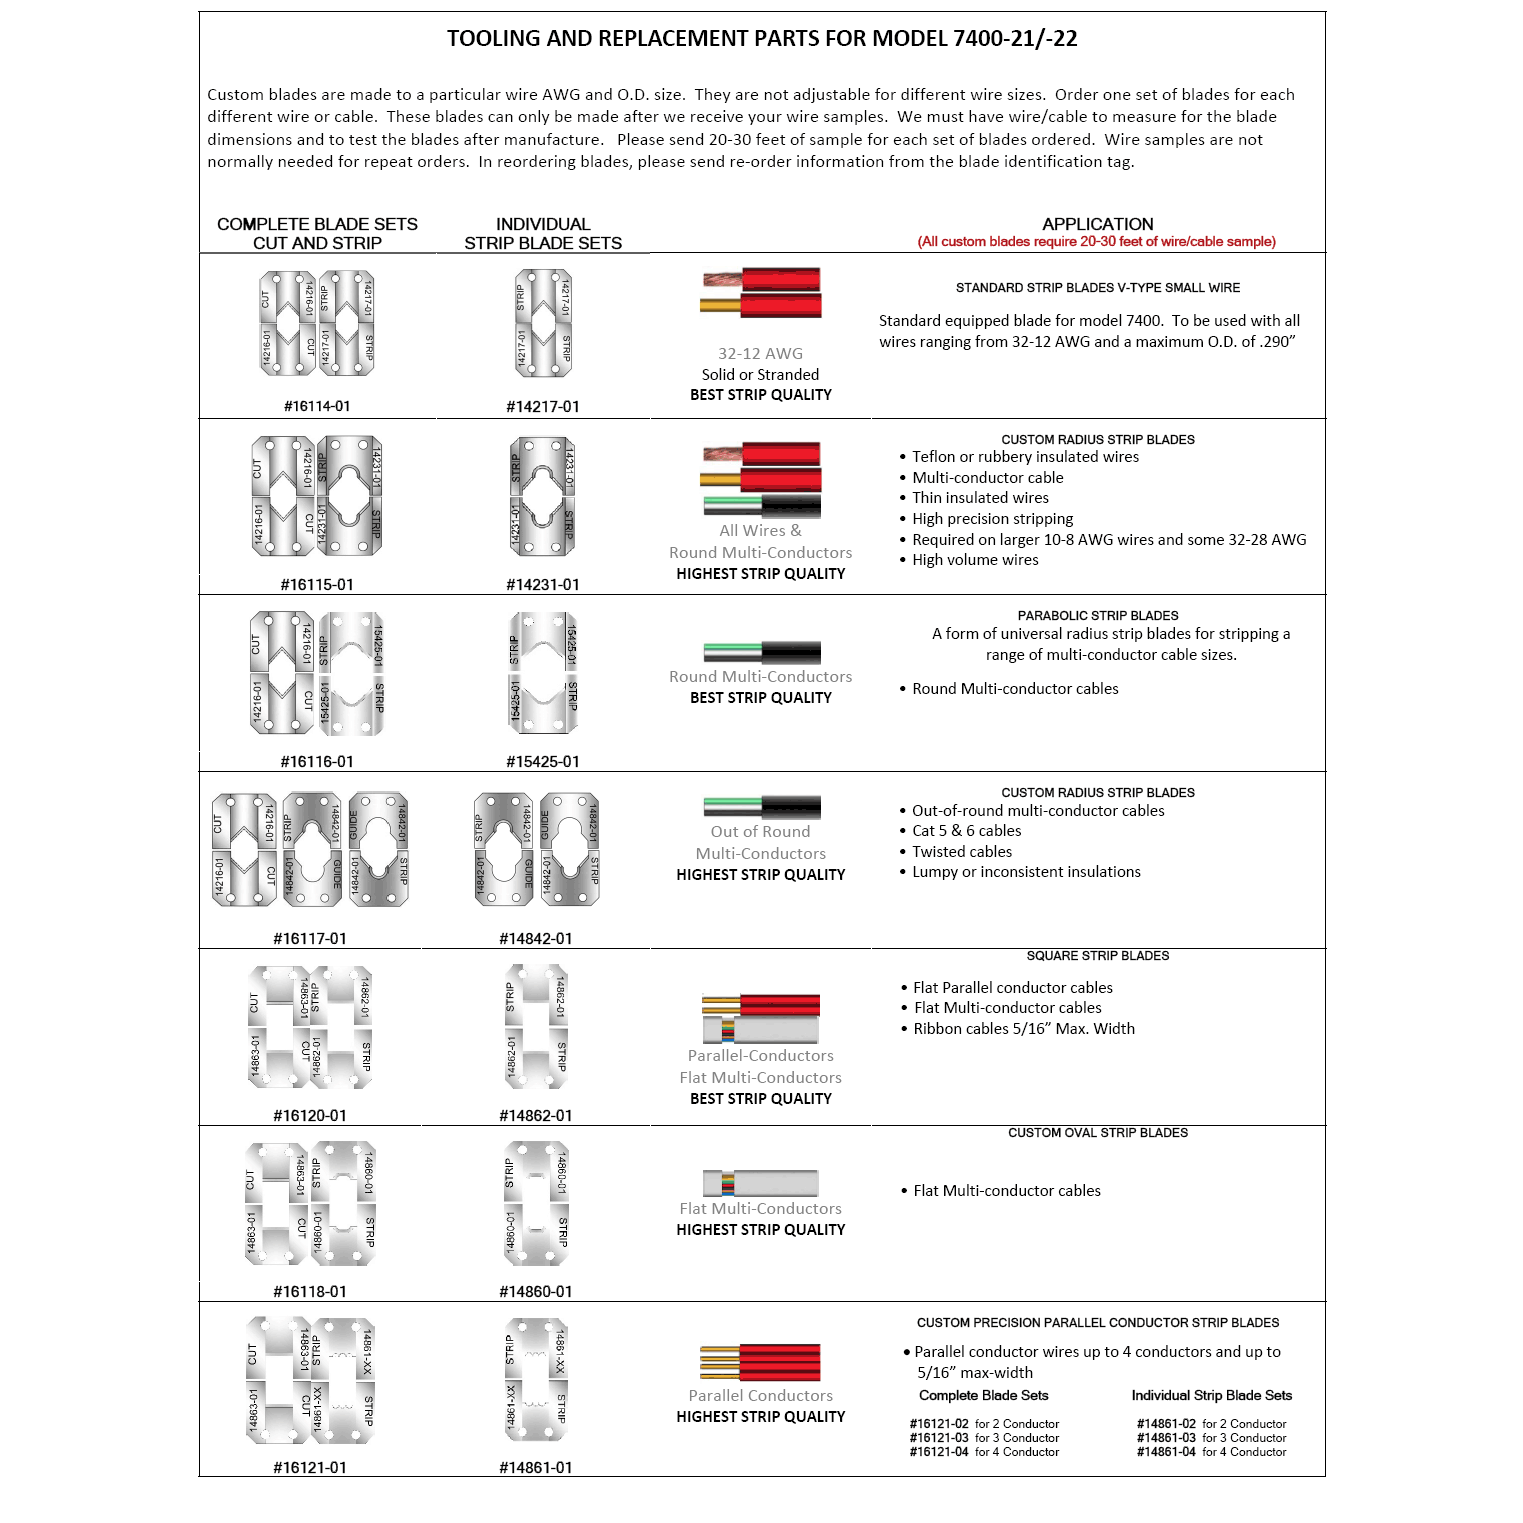 Eubanks AutoStrip 7400 Tooling & Replacement Parts (see PDF document on this page)